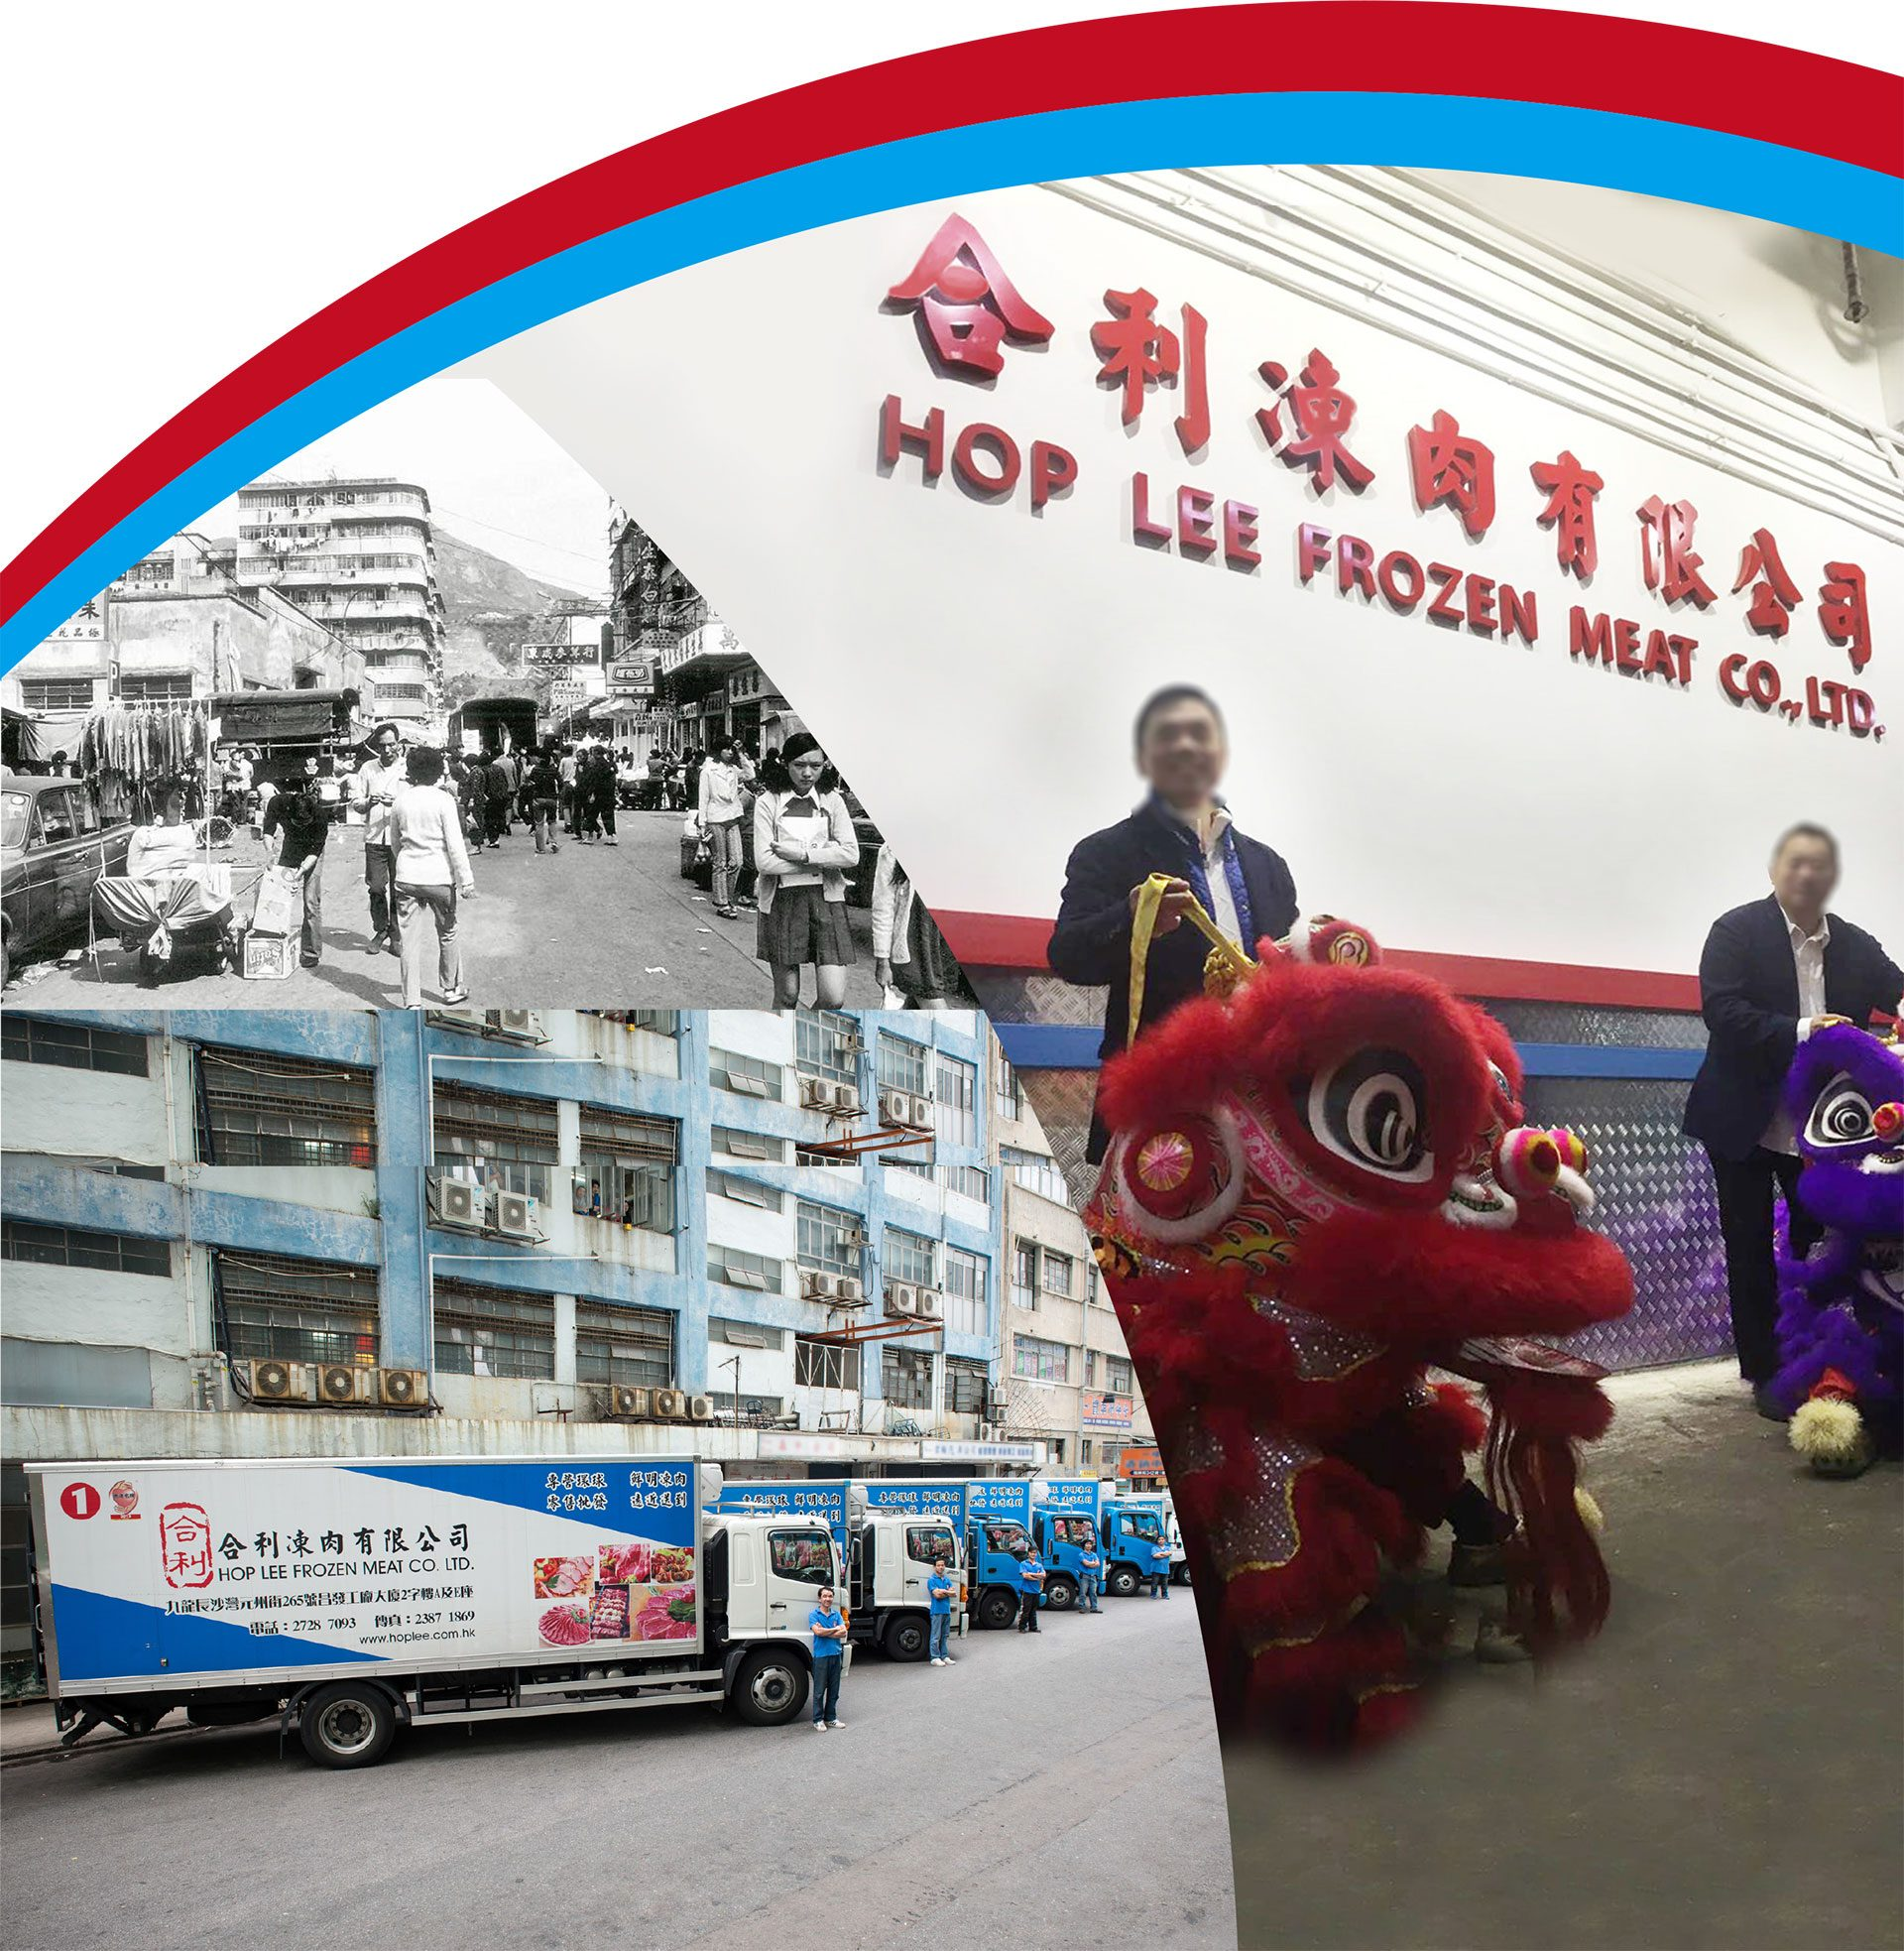 Hop Lee Frozen Meat Co. Ltd.